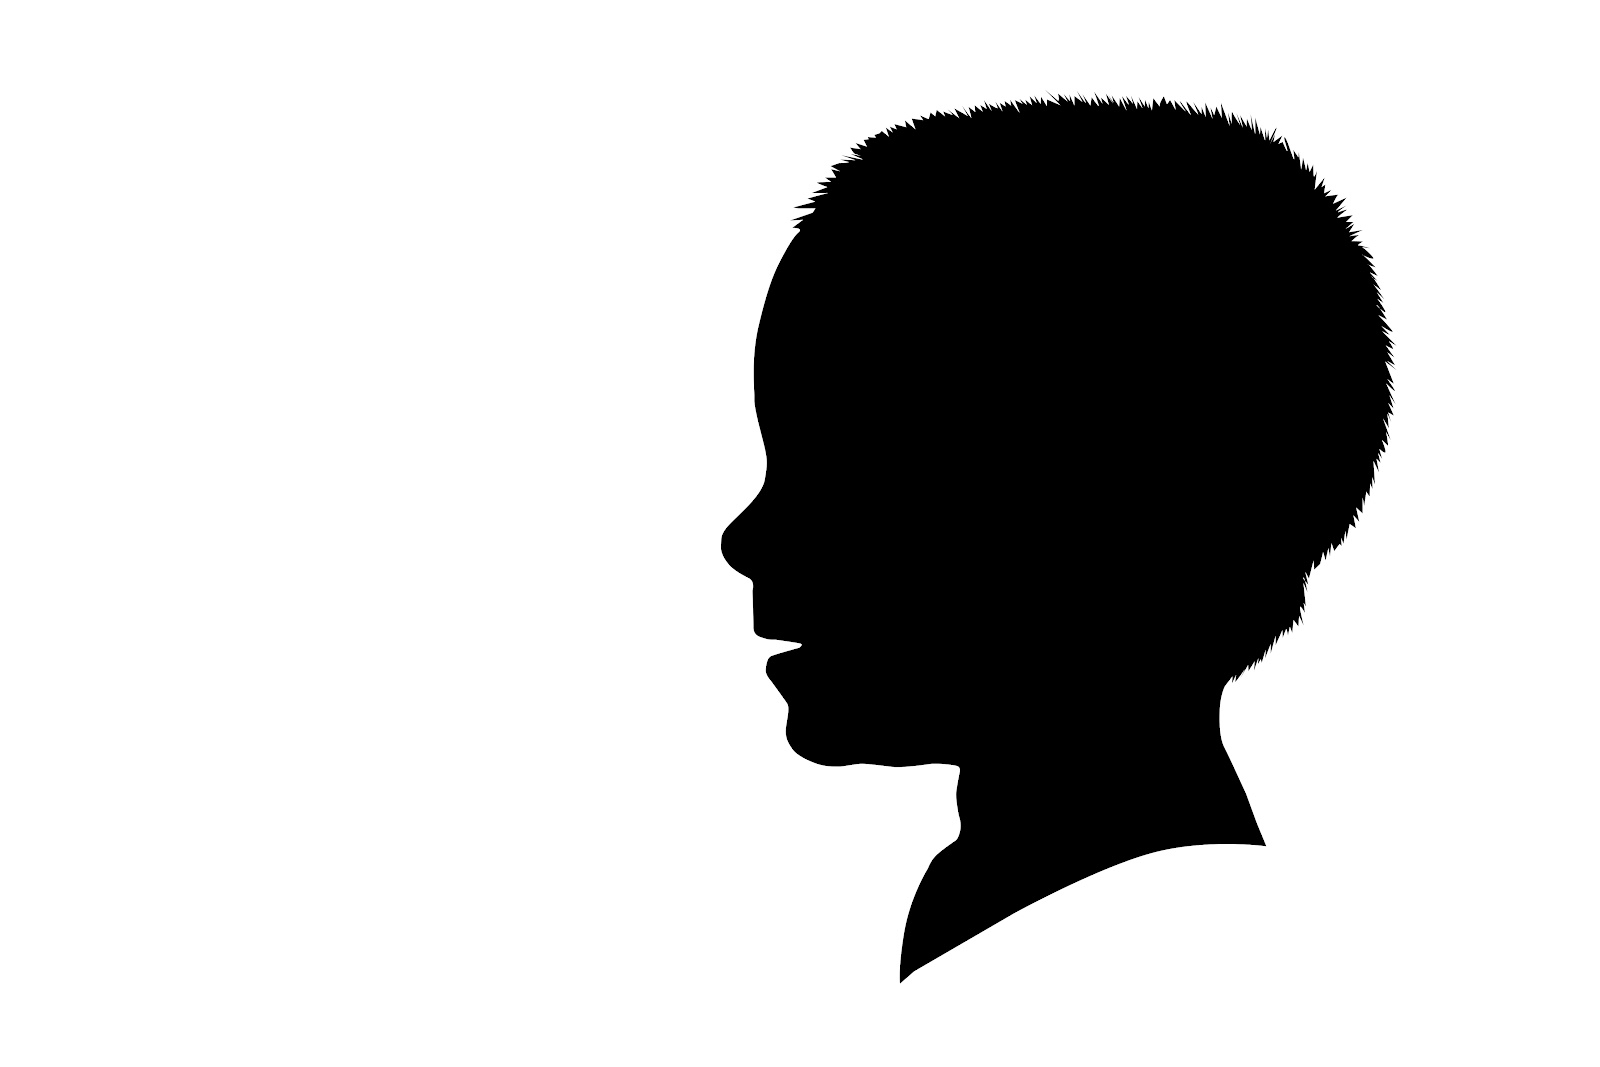 Son clipart face to face. Child silhouette at getdrawings